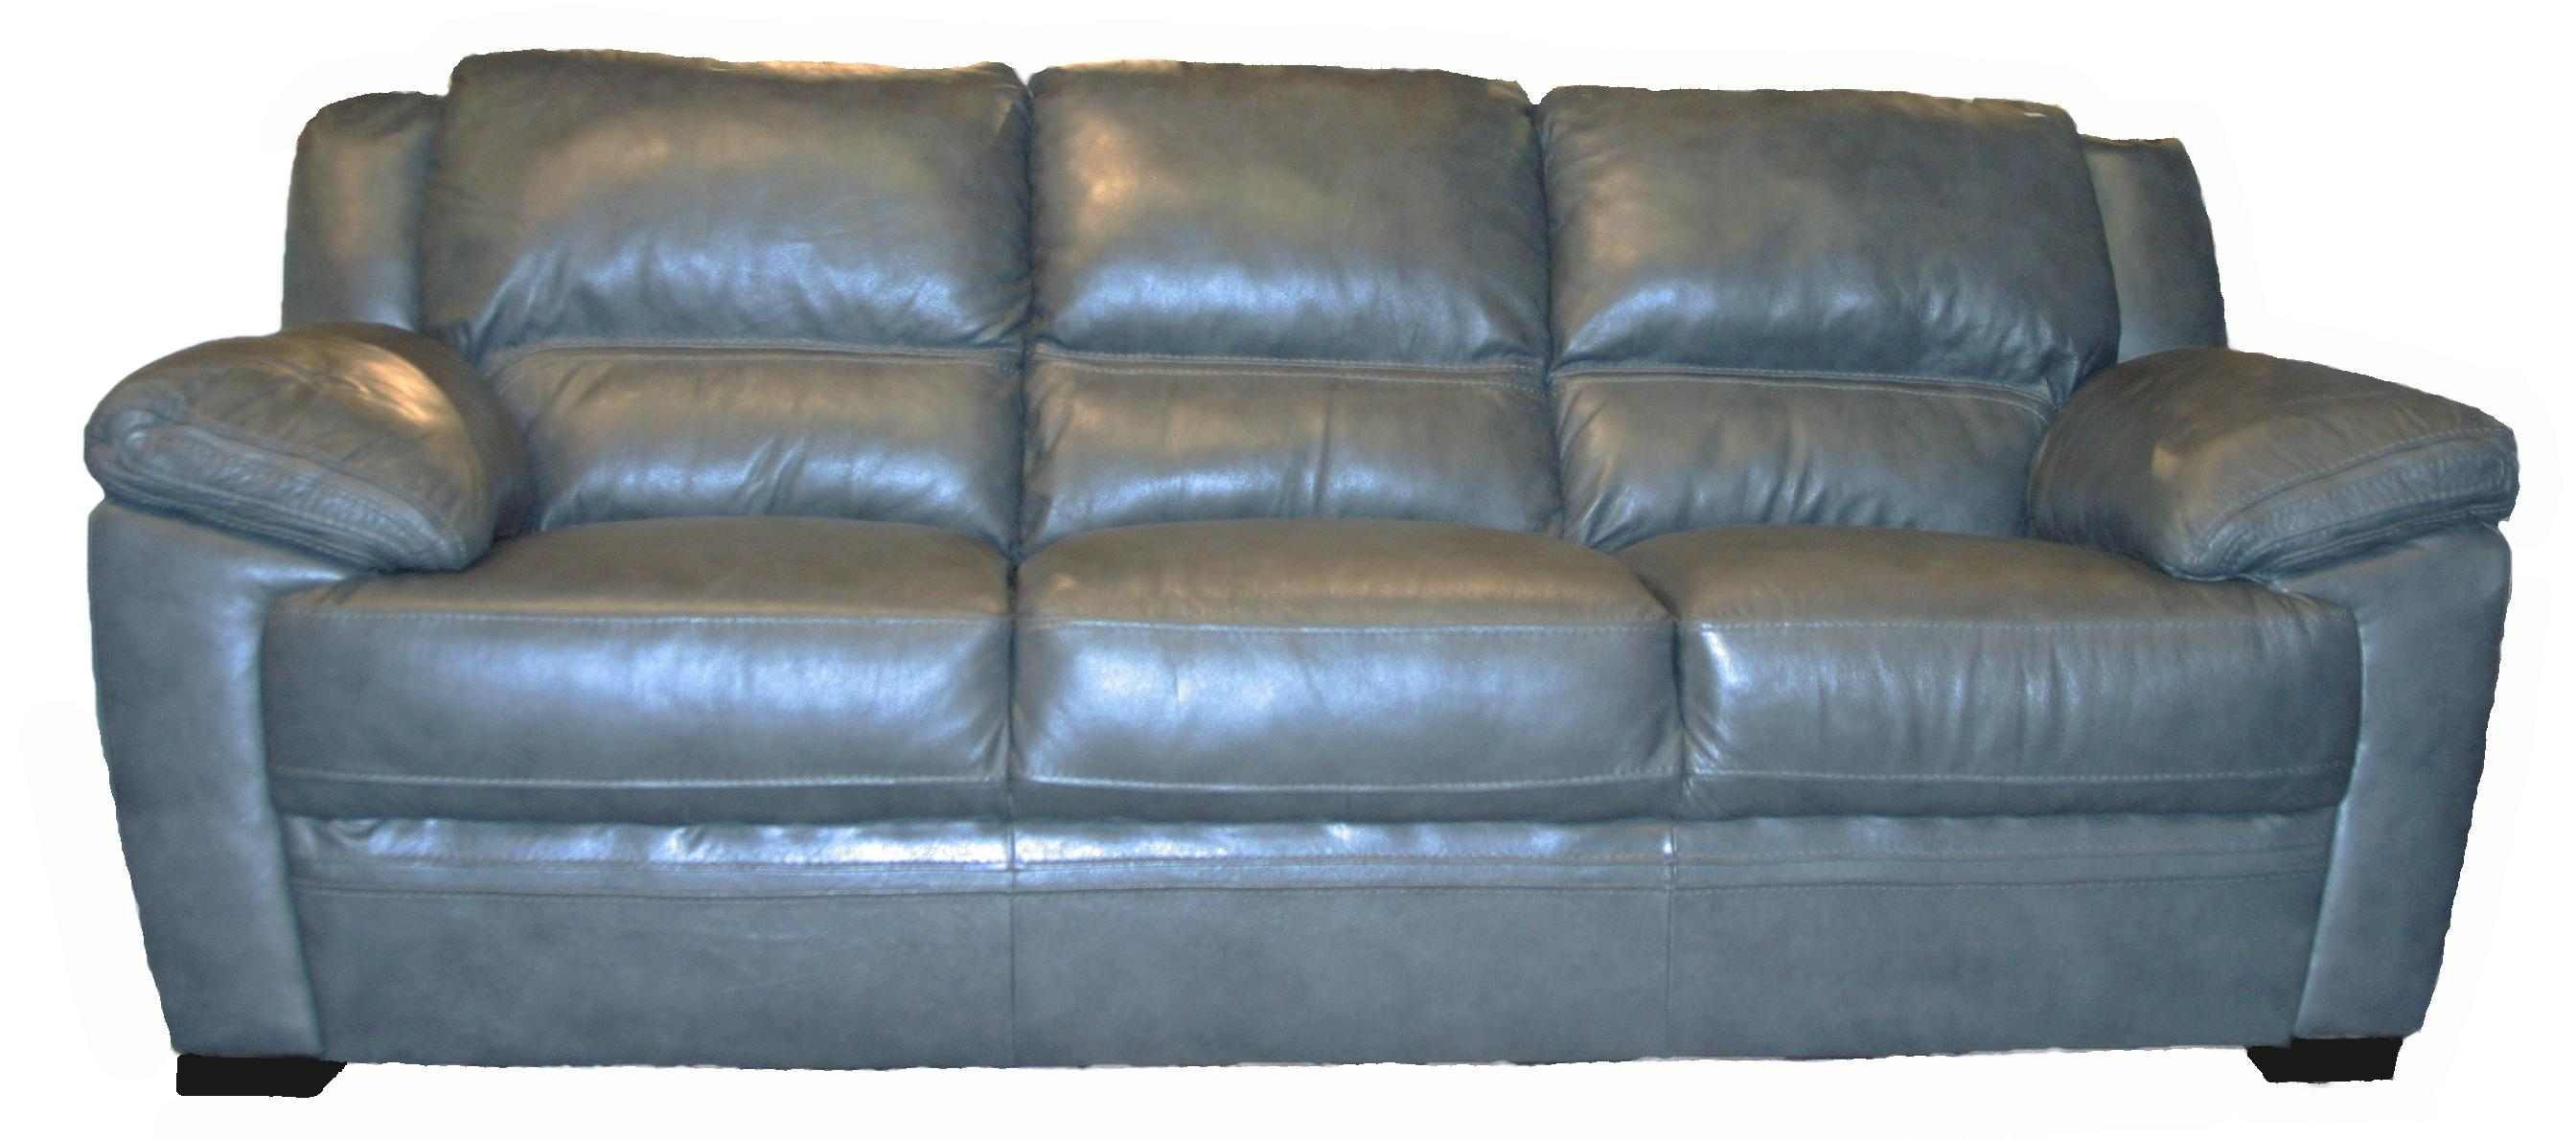 BFW Lifestyle 1963 Casual Sofa - Item Number: 1963 M1215 Dk Grey